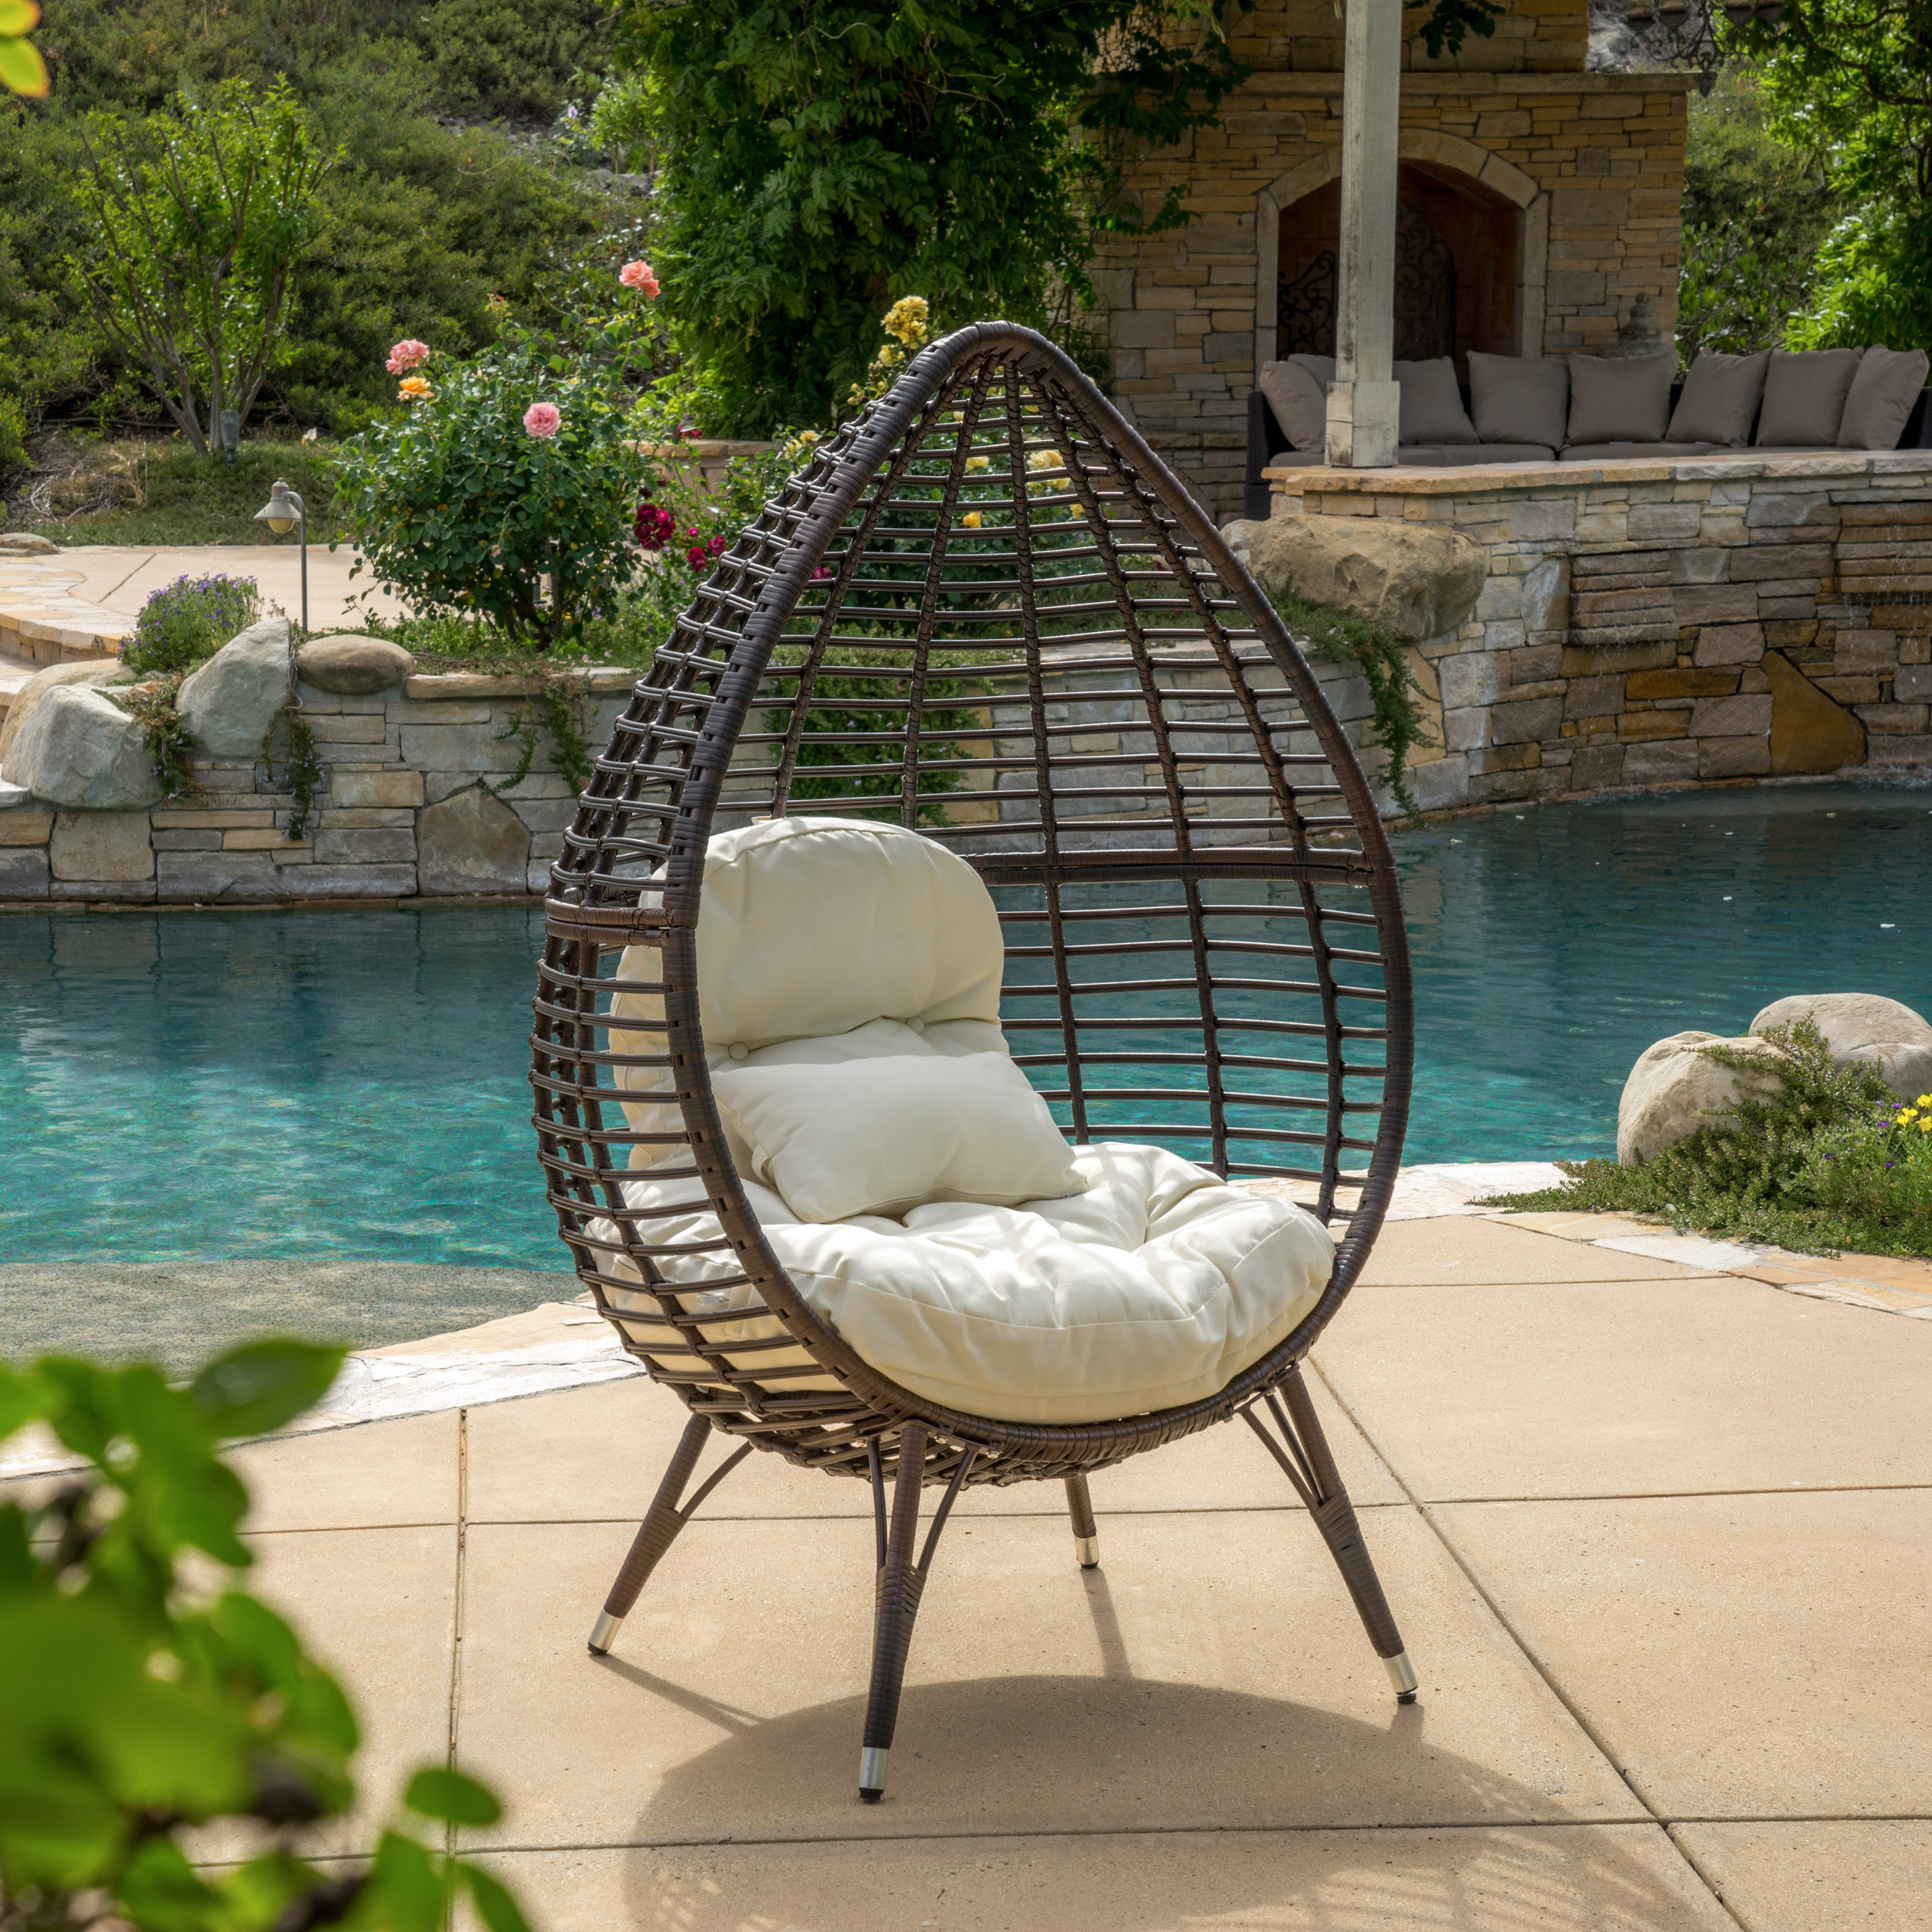 Outside Lounge Chairs Melton Teardrop Wicker Lounge Chair With Cushion Multibrown And Beige